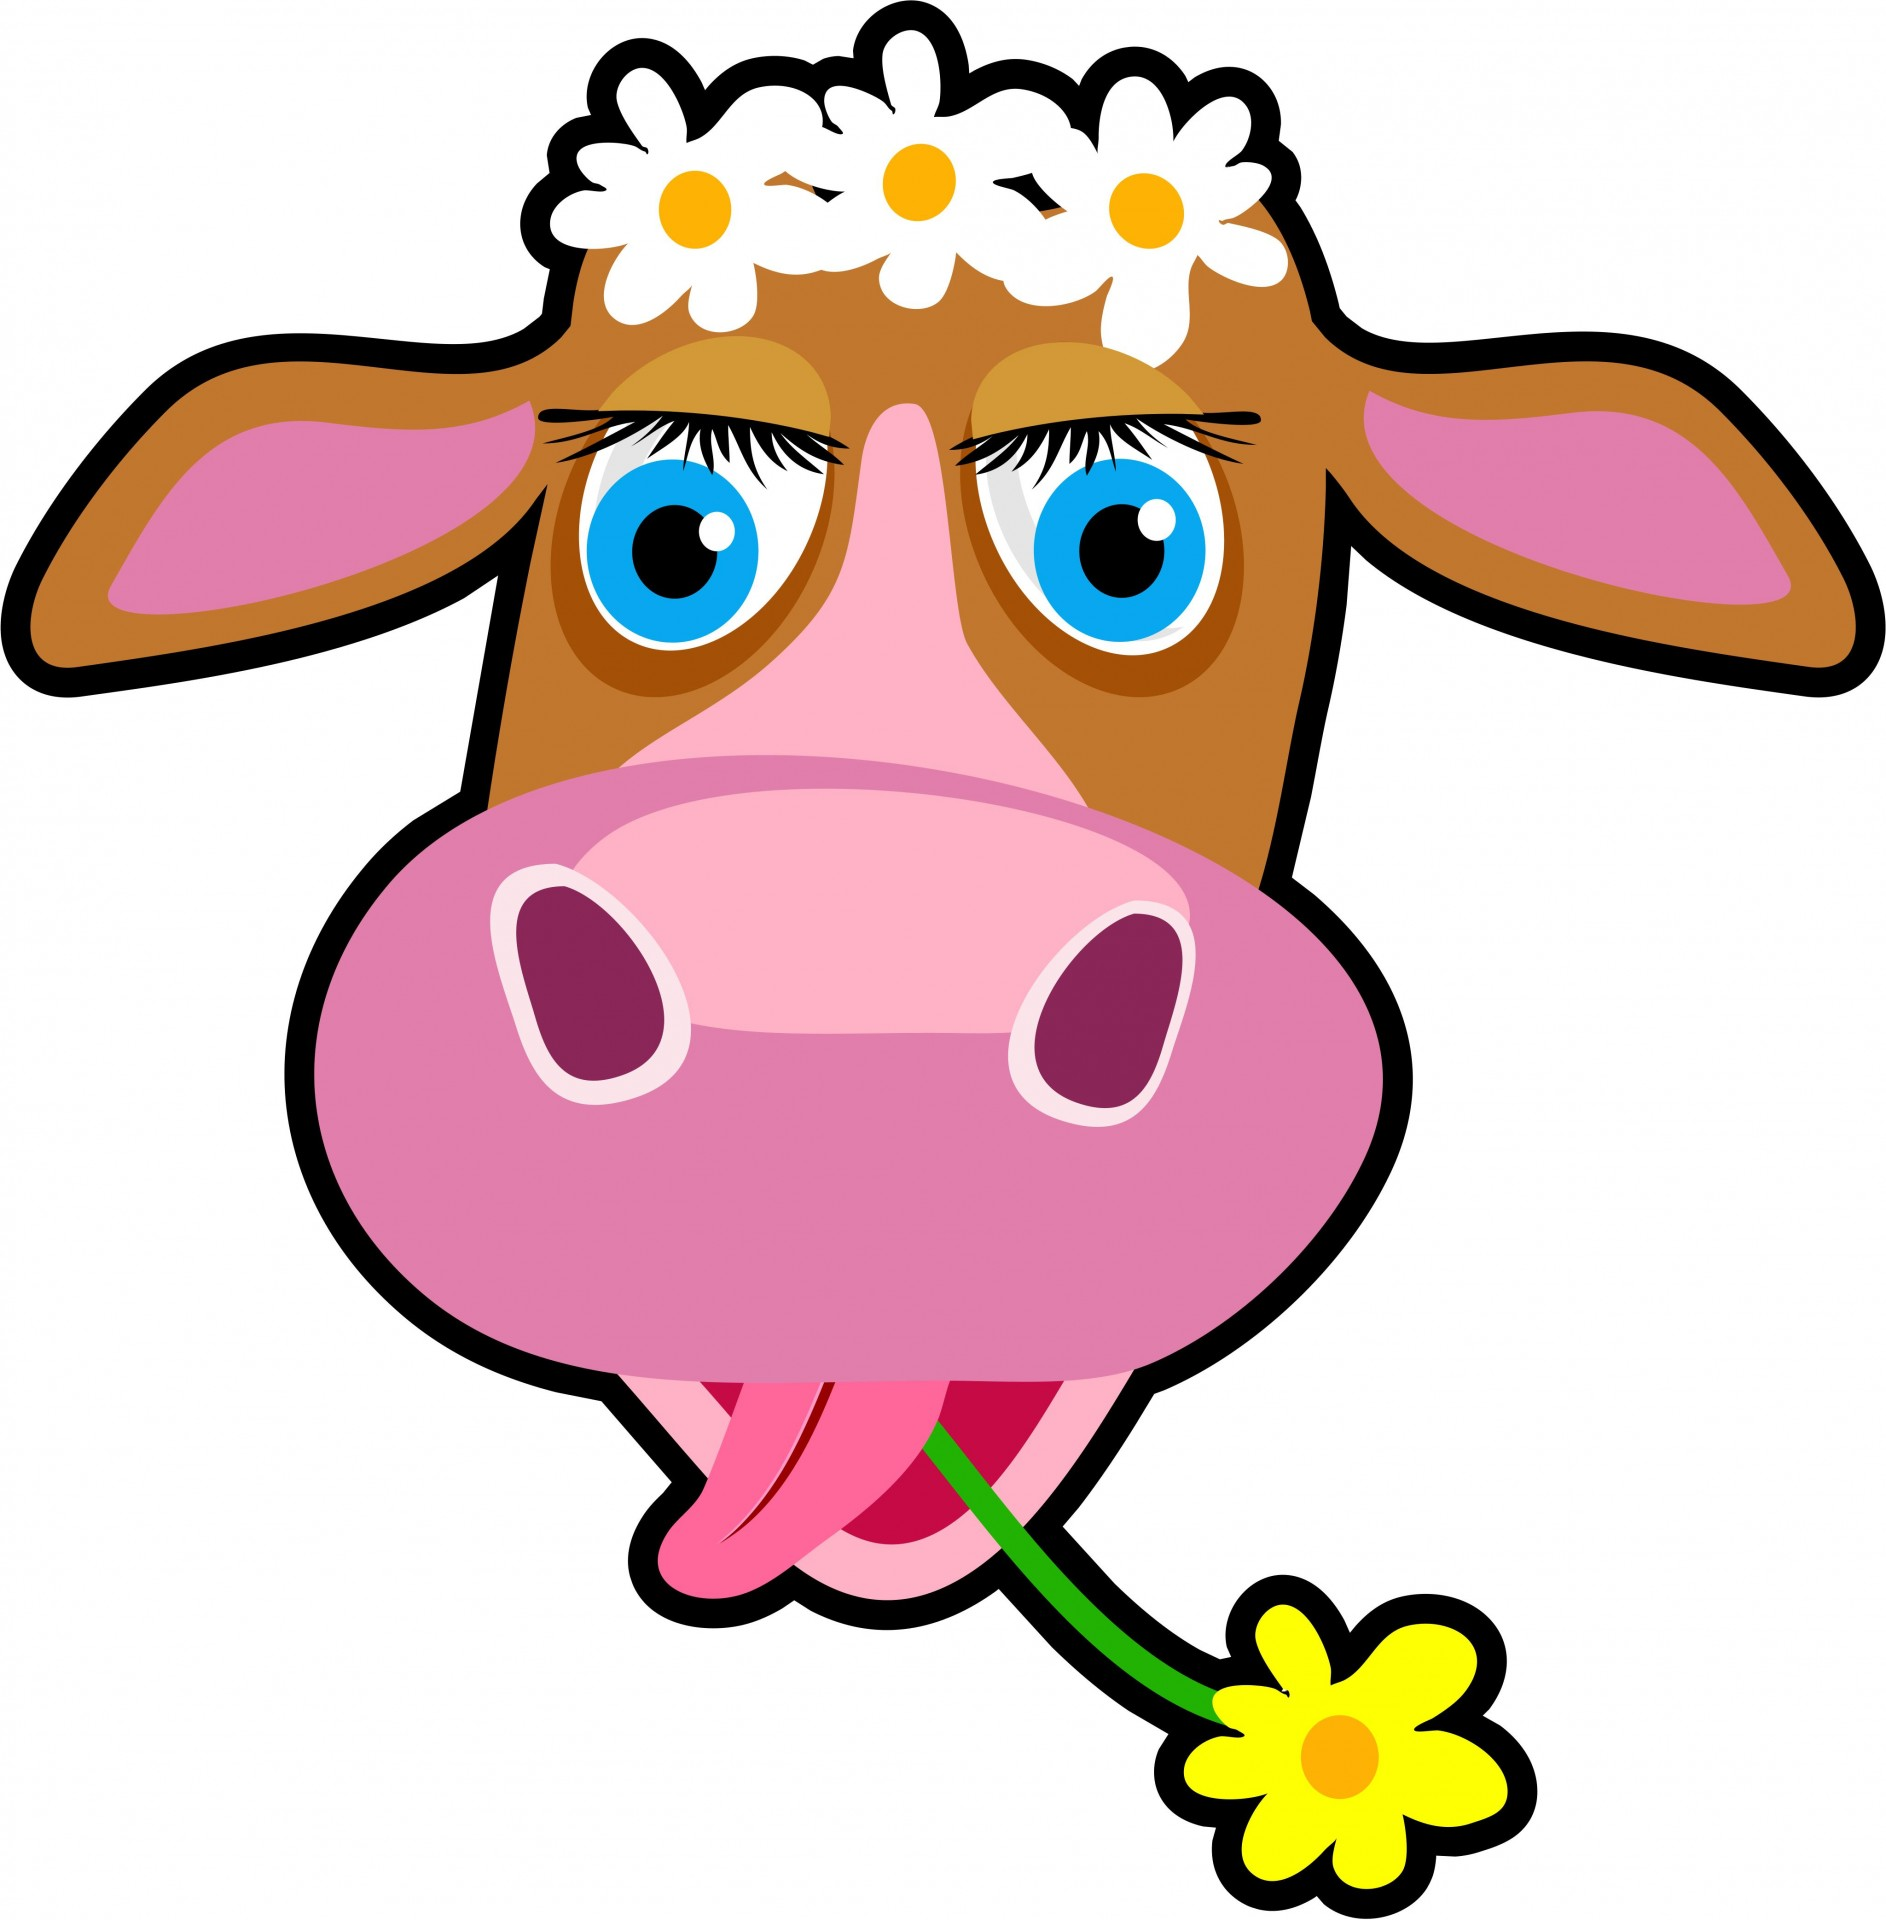 Cow clip art cartoon. Clipart free stock photo